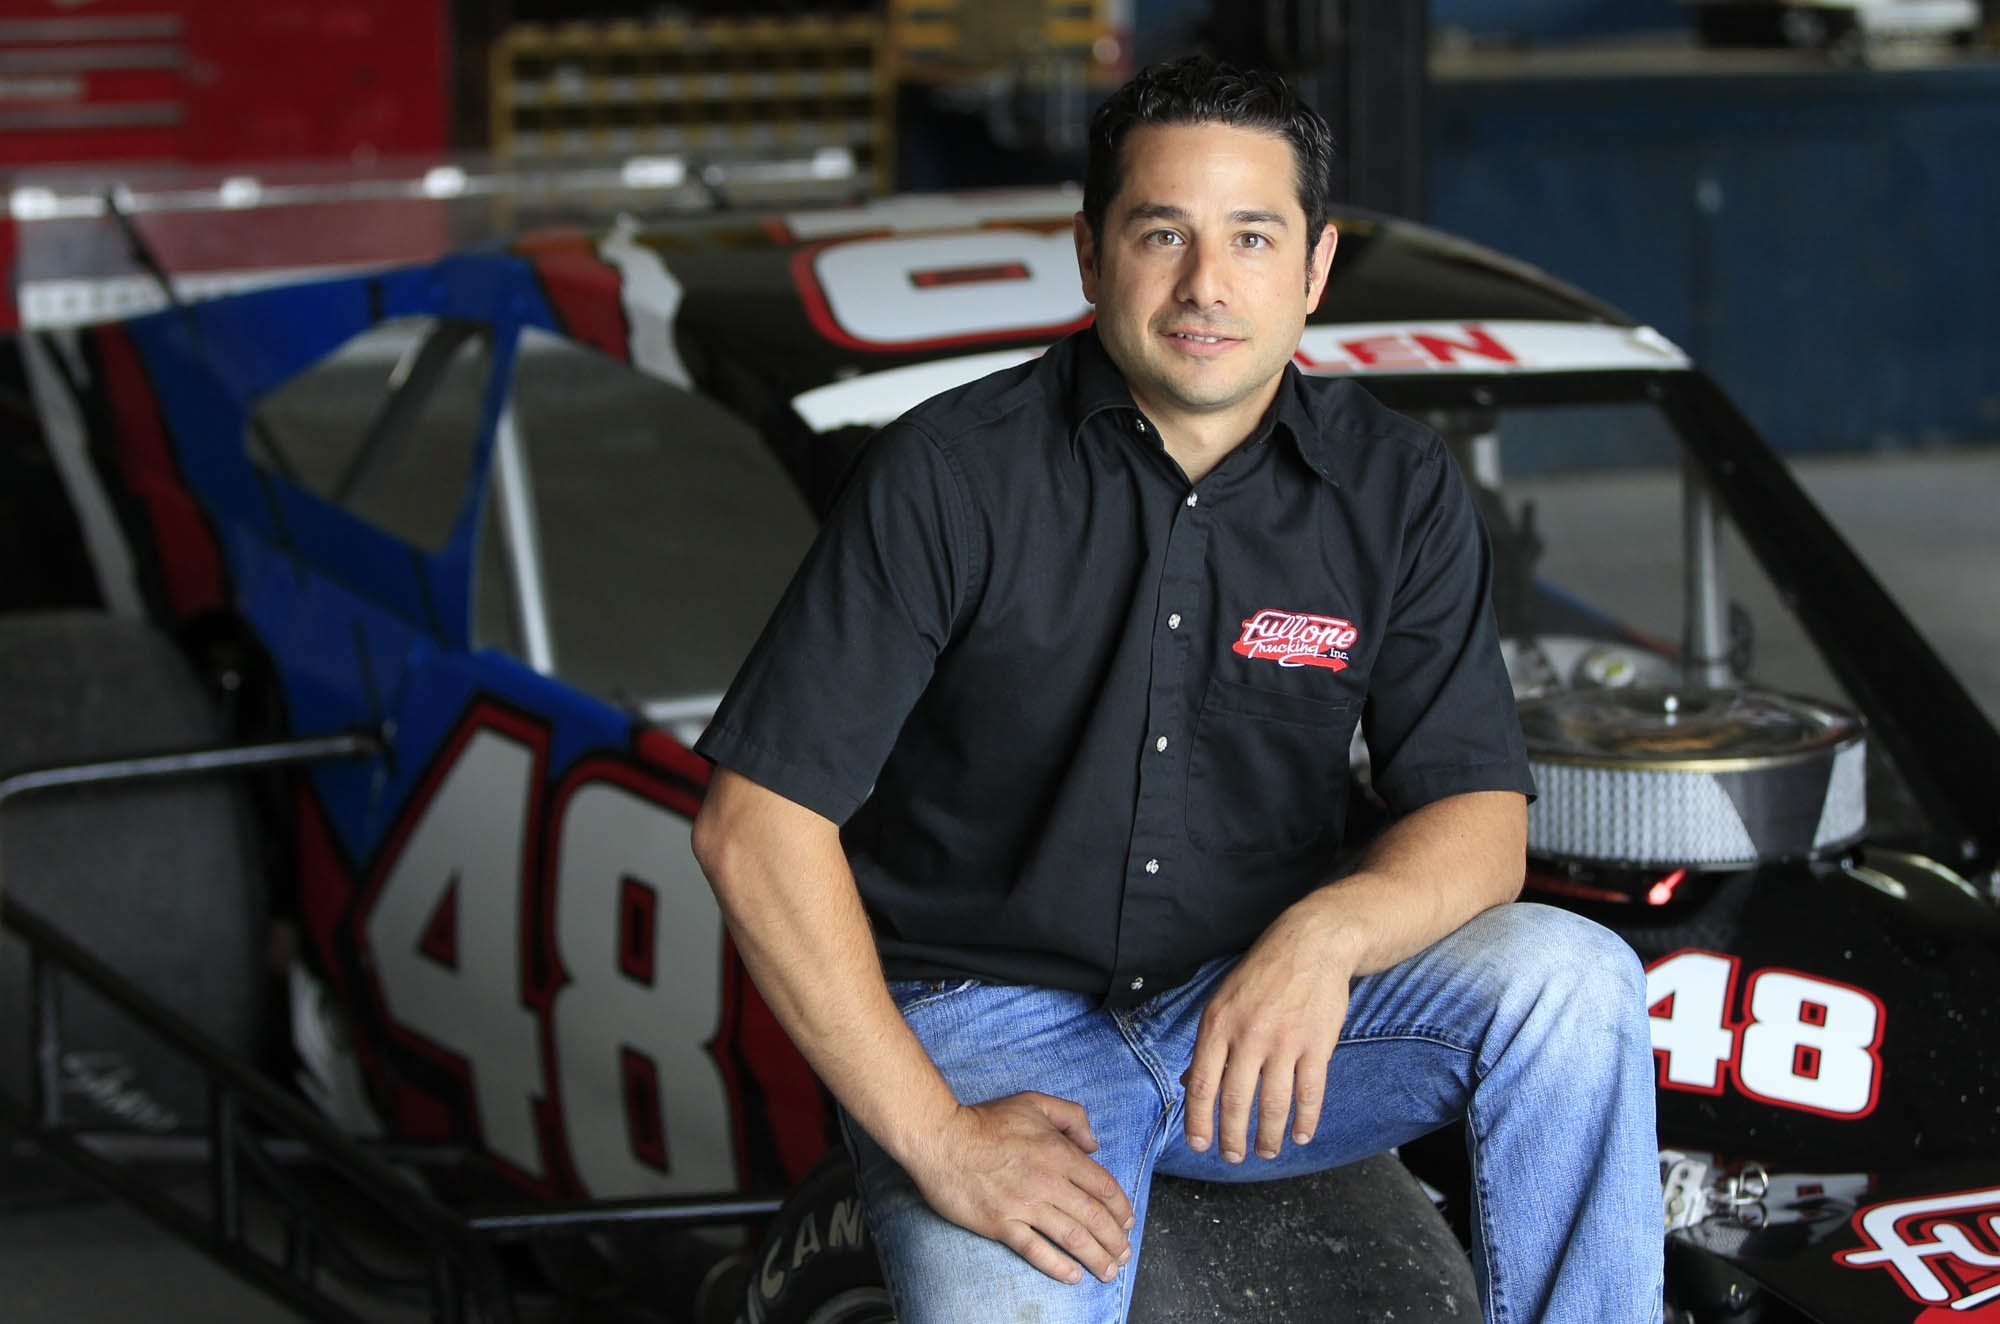 Sam Fullone and his North Collins-based racing team are competing on the Sunoco Race of Champions Modified Tour this season.